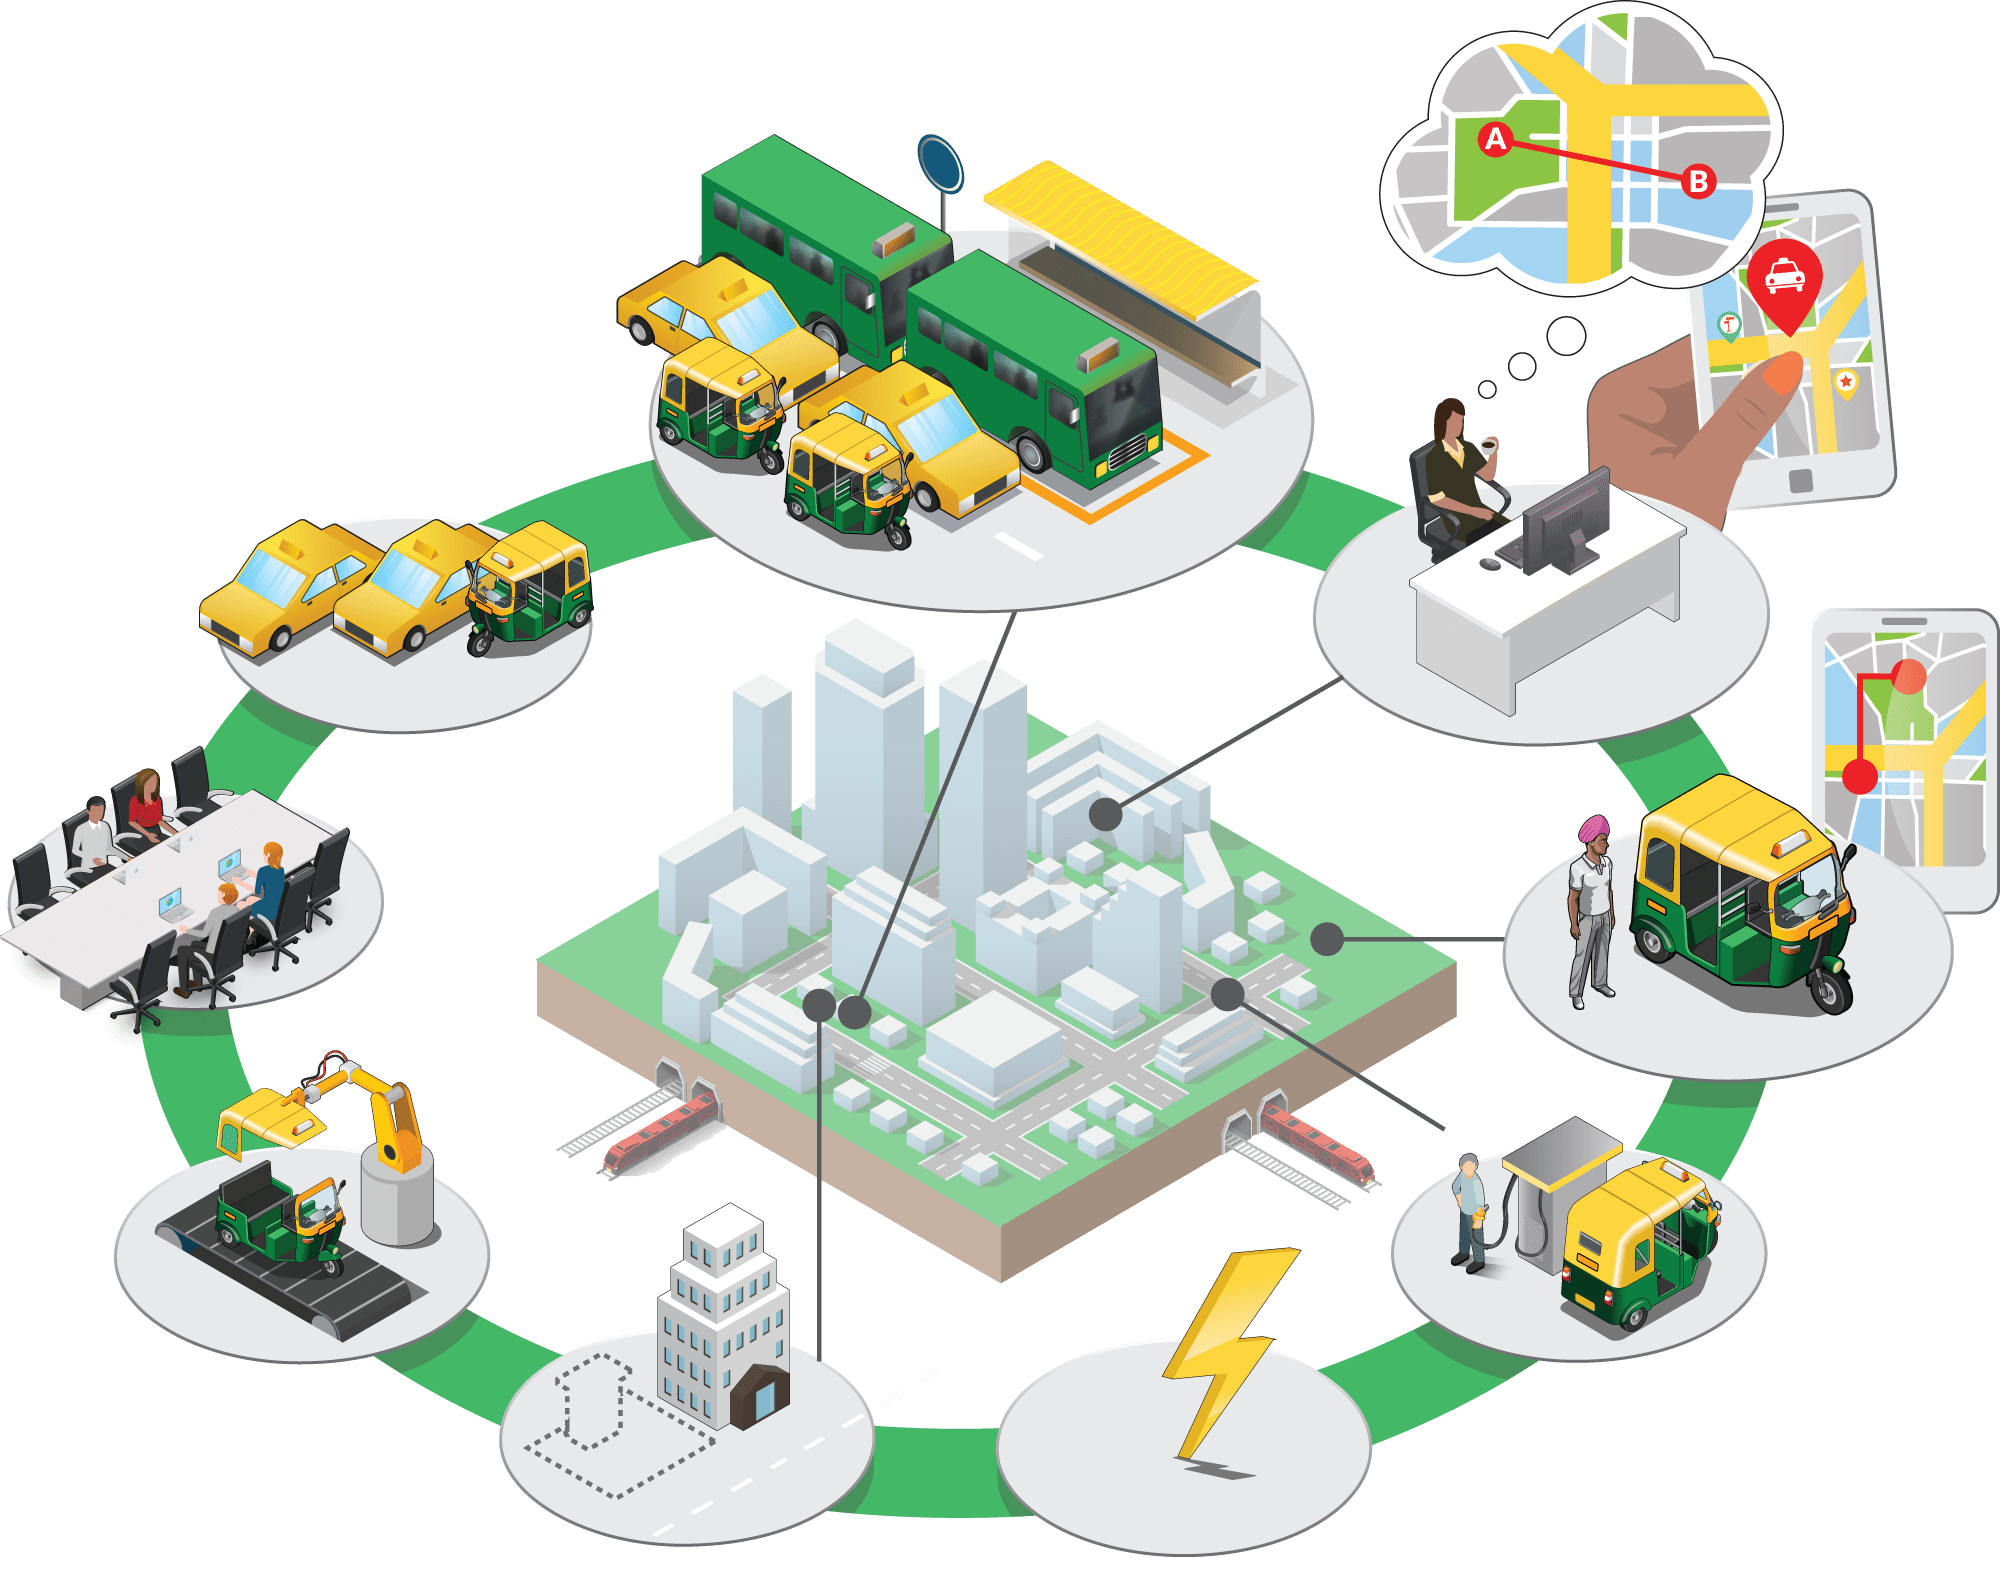 Avantoventures_india_electric_mobility_ecosystem.png